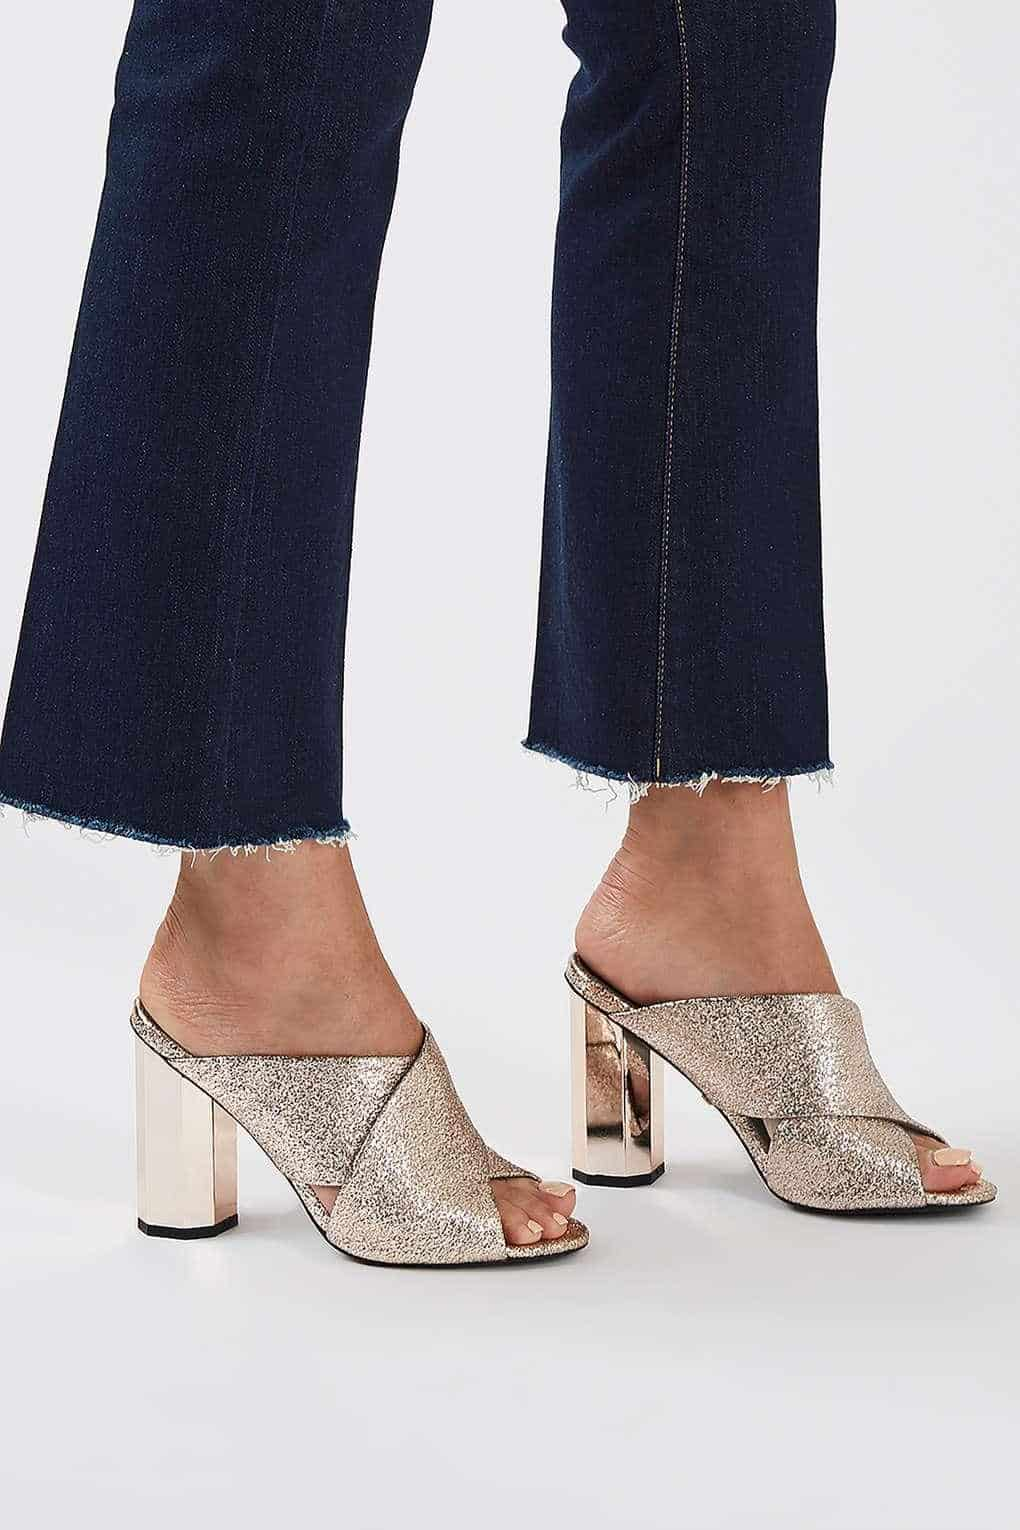 metallic mules